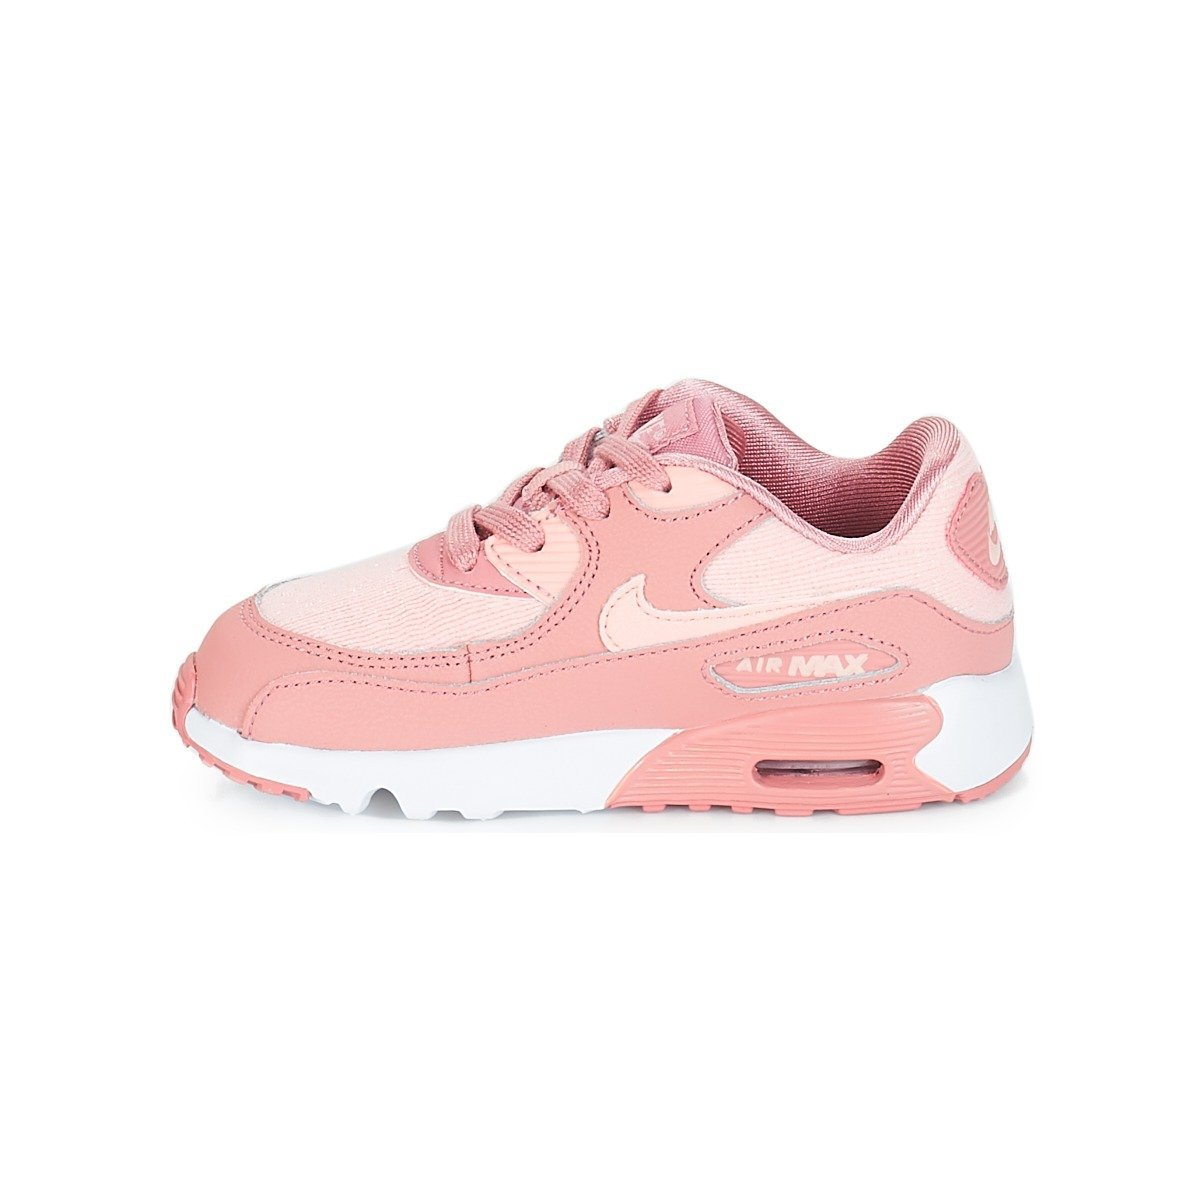 new style 7e9ee 7afc8 Nike Unisex Kids Air Max 90 Se Mesh (td) Competition Running Shoes,  Multicolour (Rust Storm Pink Guava Ice White 601), 9.5 UK  Amazon.co.uk   Shoes   Bags